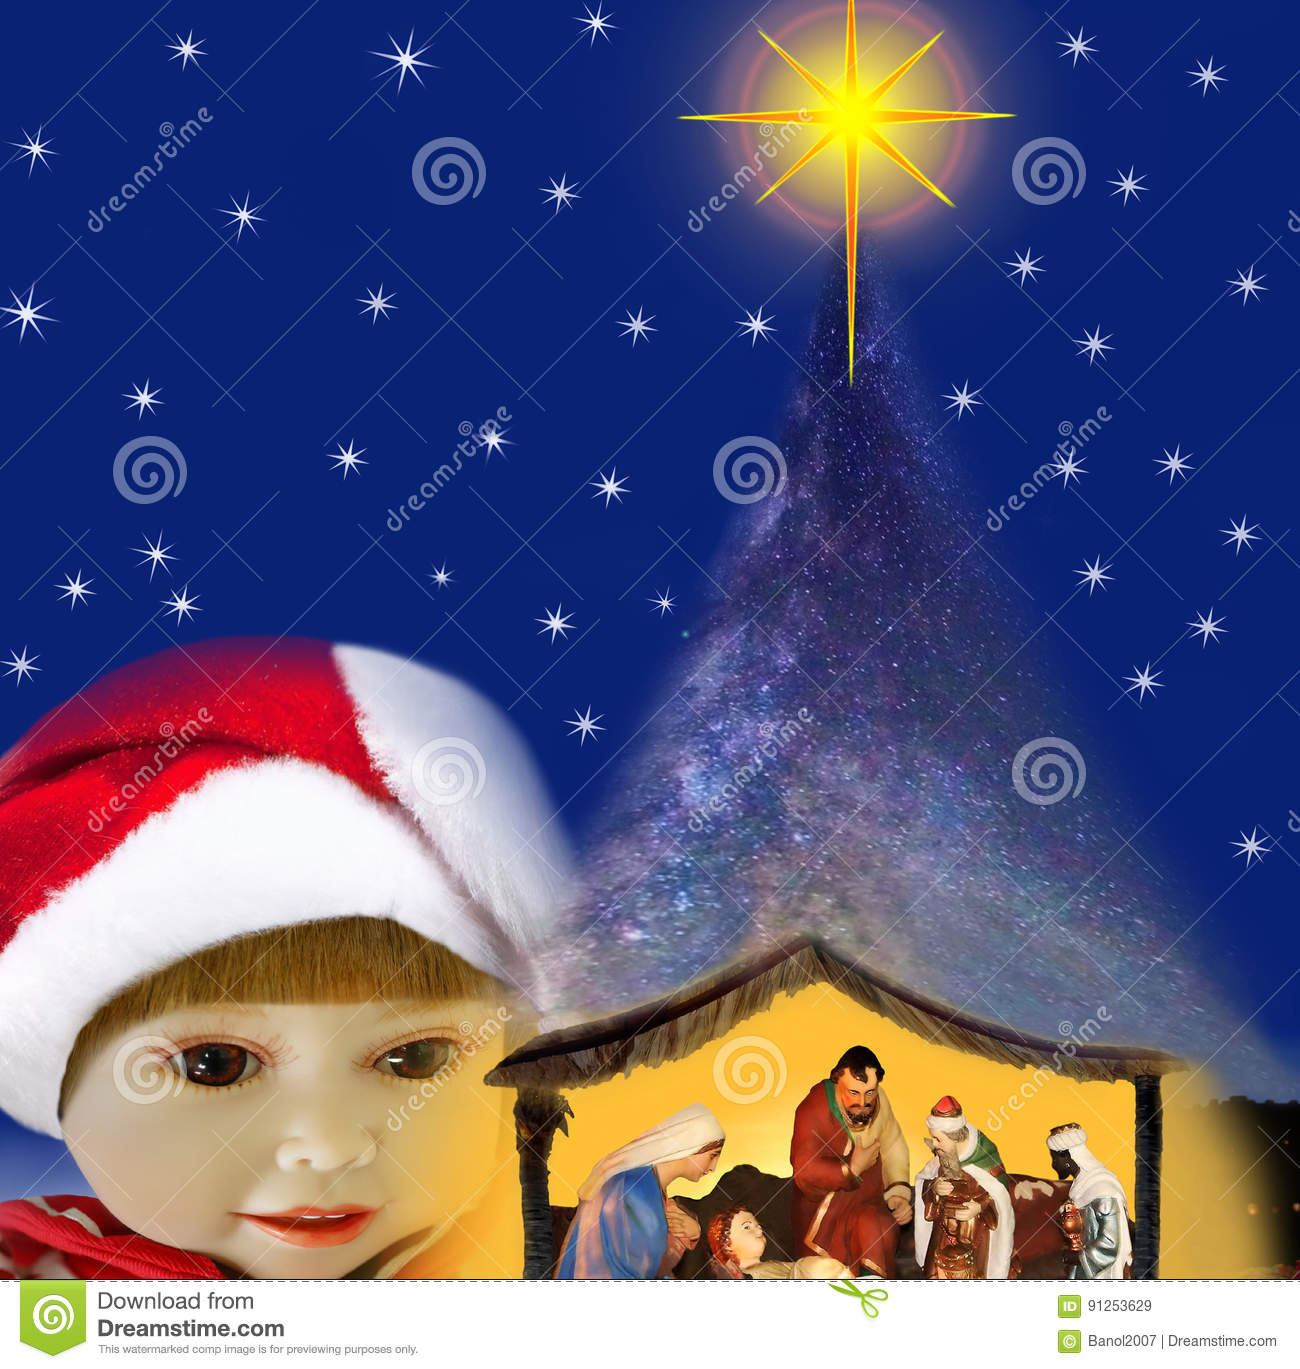 The Miracle Of Christmas.Girl Miracle Of Christmas Night Stock Image Image Of